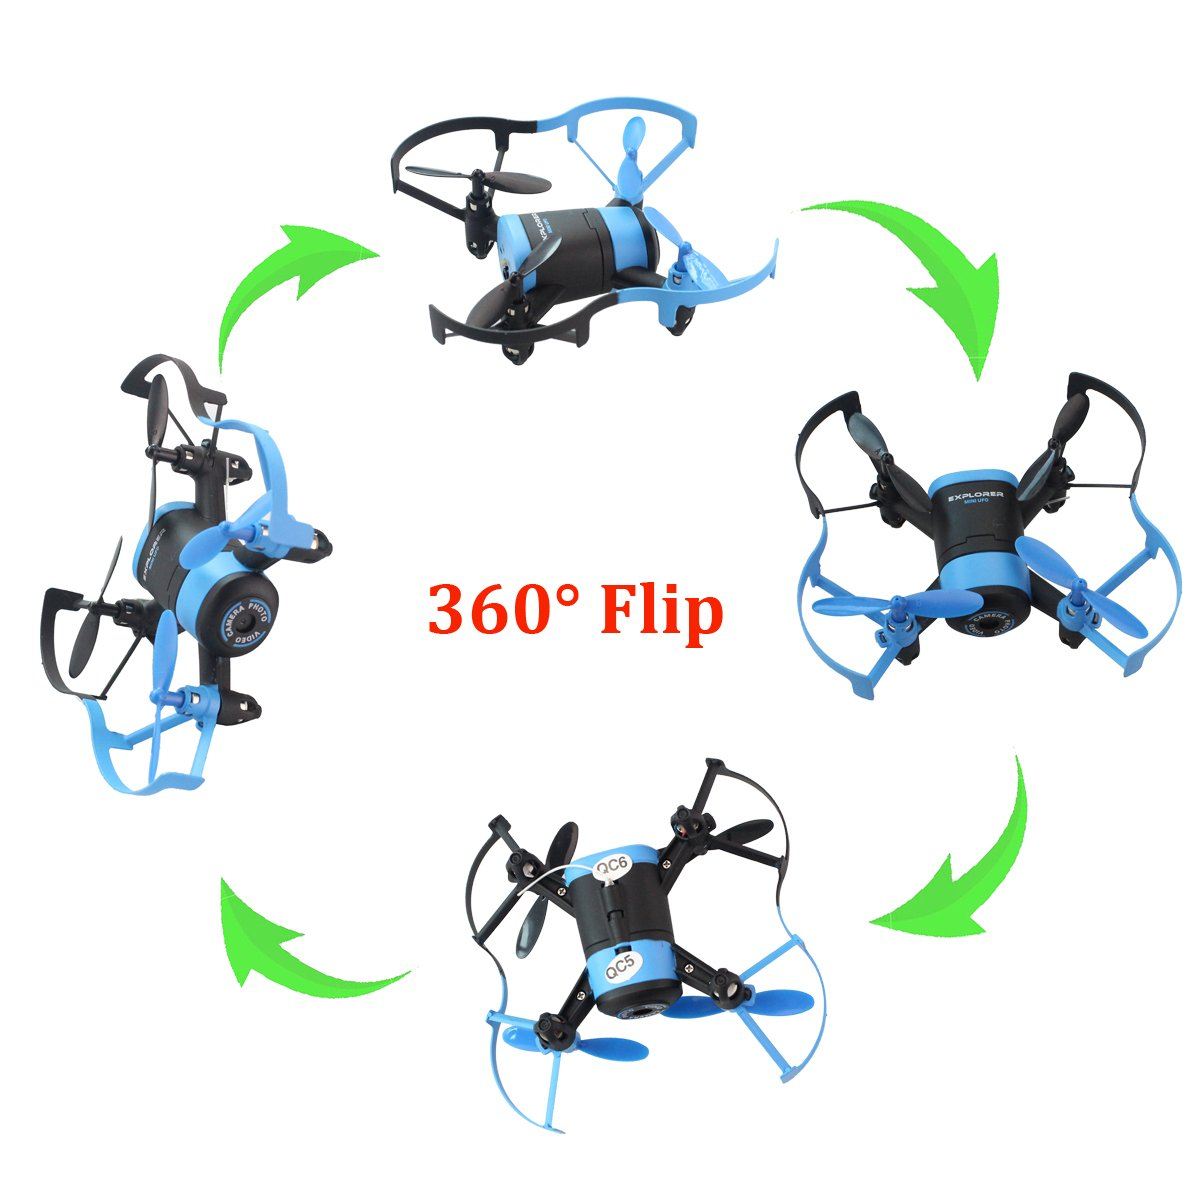 Fistone RC Drone Quadcopter Remote Control Aircraft 2.4G Built-in 6-Axis Gyro Wifi Camera for Iphone Android Mini RC Helicopter Real-Time Video HD Camera with Headless Mode Blue